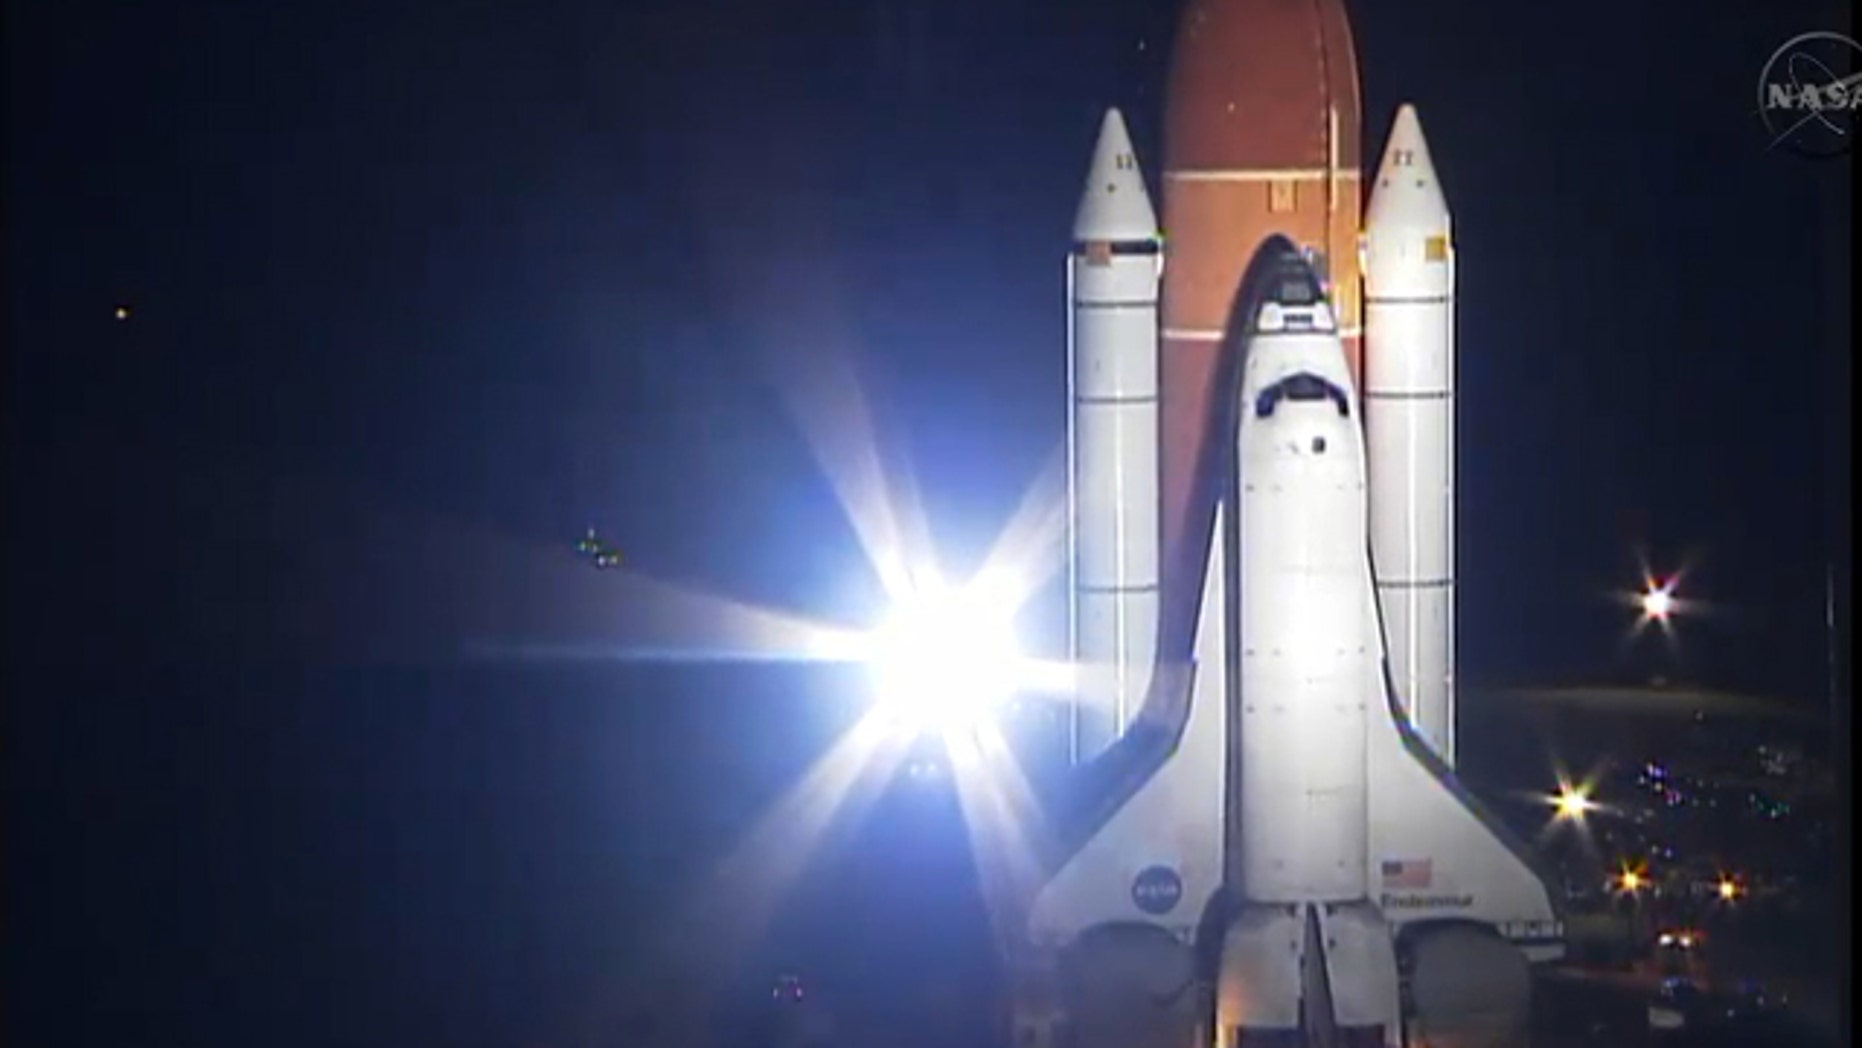 NASA's space shuttle Endeavour heads to the launch pad for its final mission, STS-134, while bathed in bright xenon spotlights on March 10, 2011 at NASA's Kennedy Space Center in Florida. Endeavour will fly its 25th and last mission during the STS-134 flight.